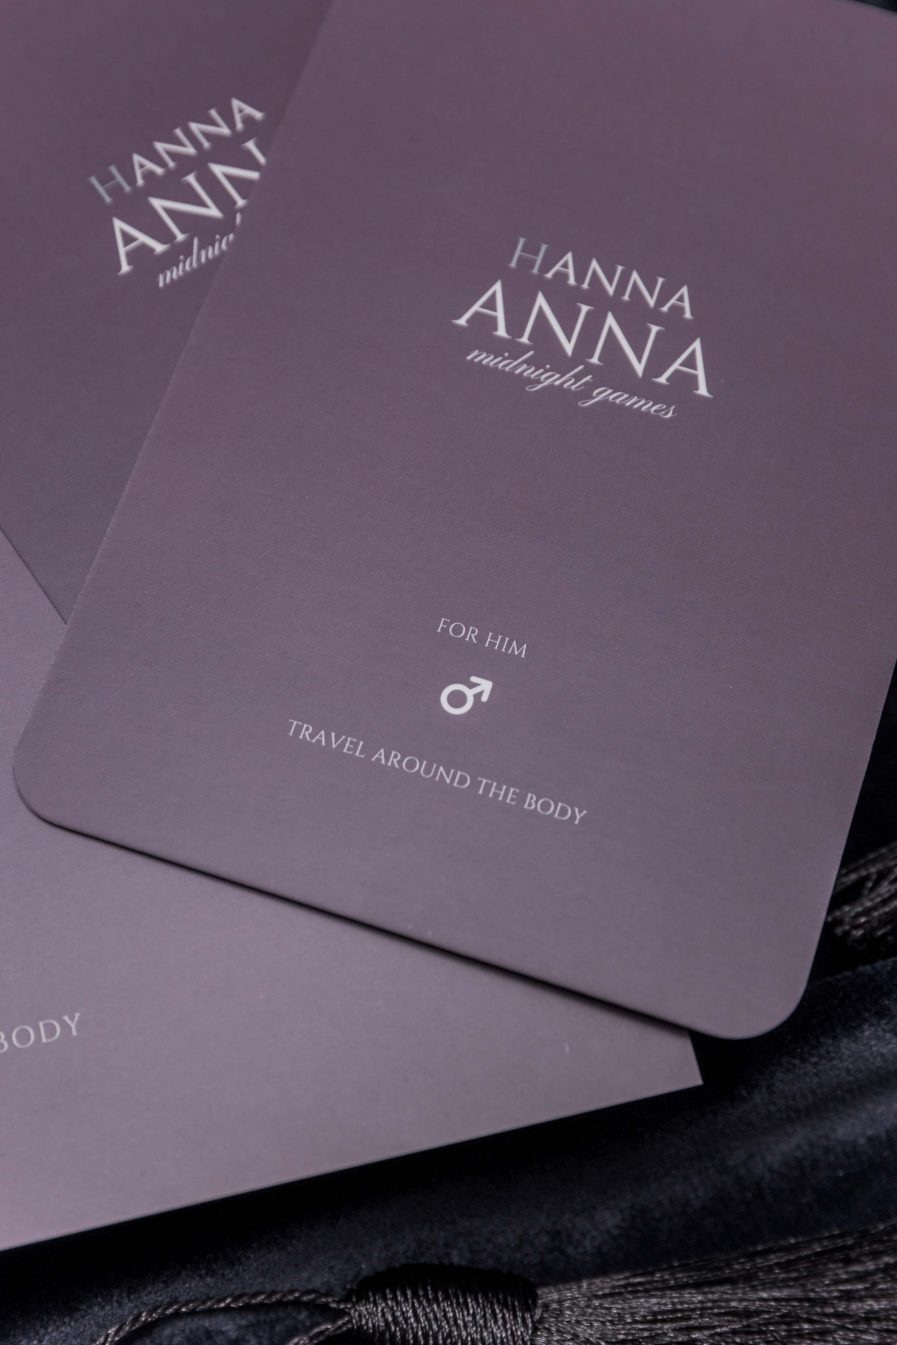 HANNA ANNA Game Travel Around The Body Game for Couples Romantic Erotic